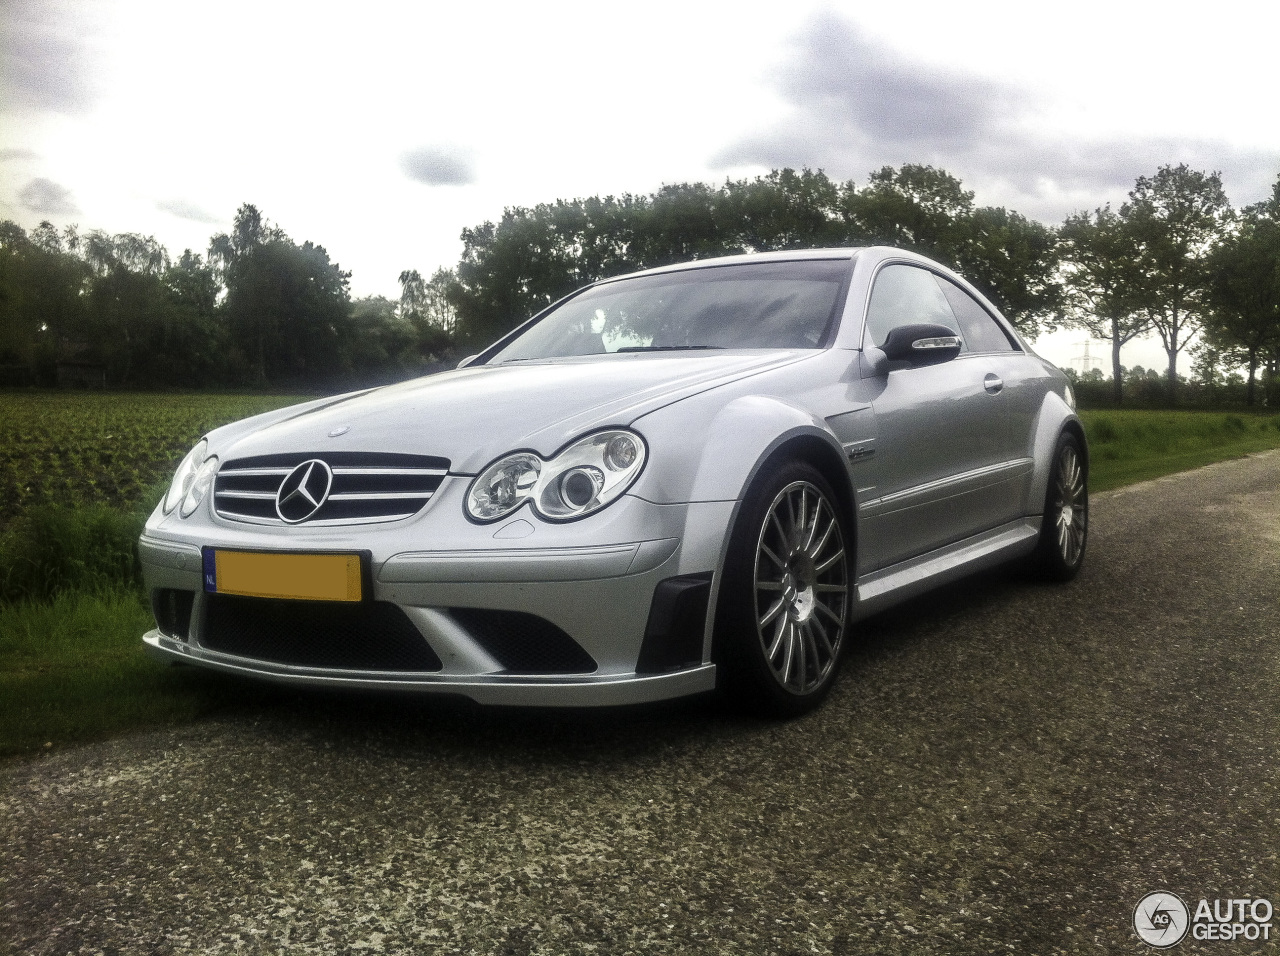 Mercedes benz clk 63 amg black series 18 may 2013 for Mercedes benz clk 63